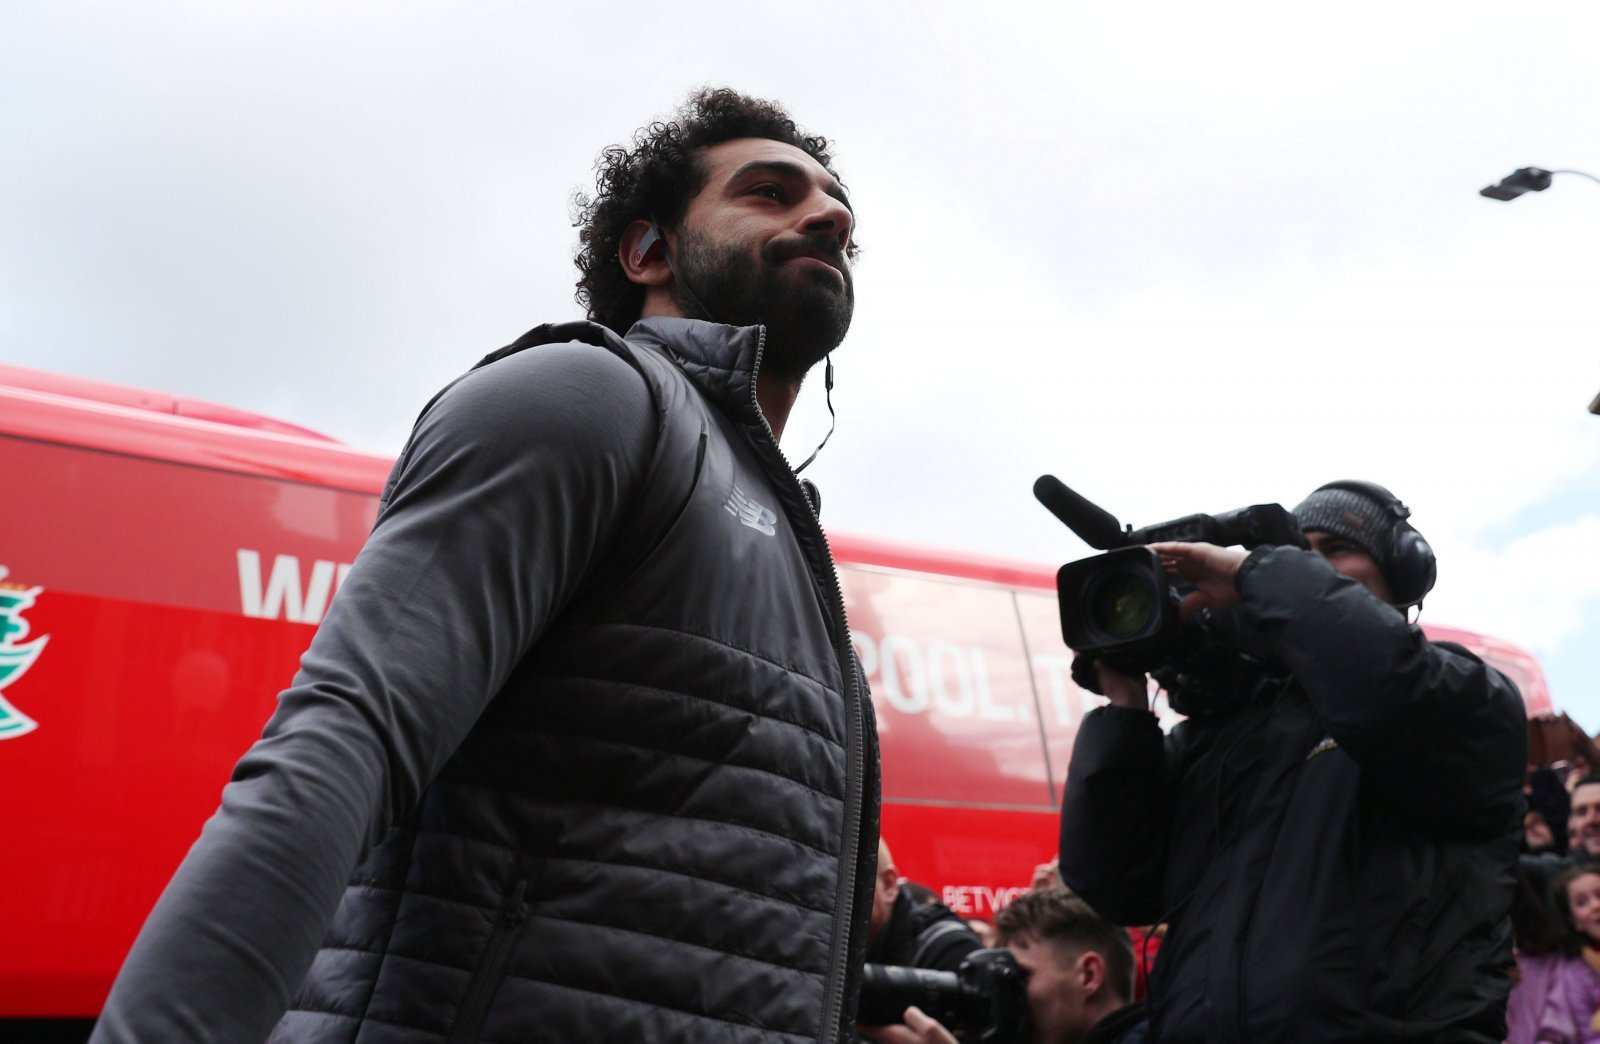 Liverpool: Mohamed Salah value shows Jurgen Klopp knows how to spot profitable talent